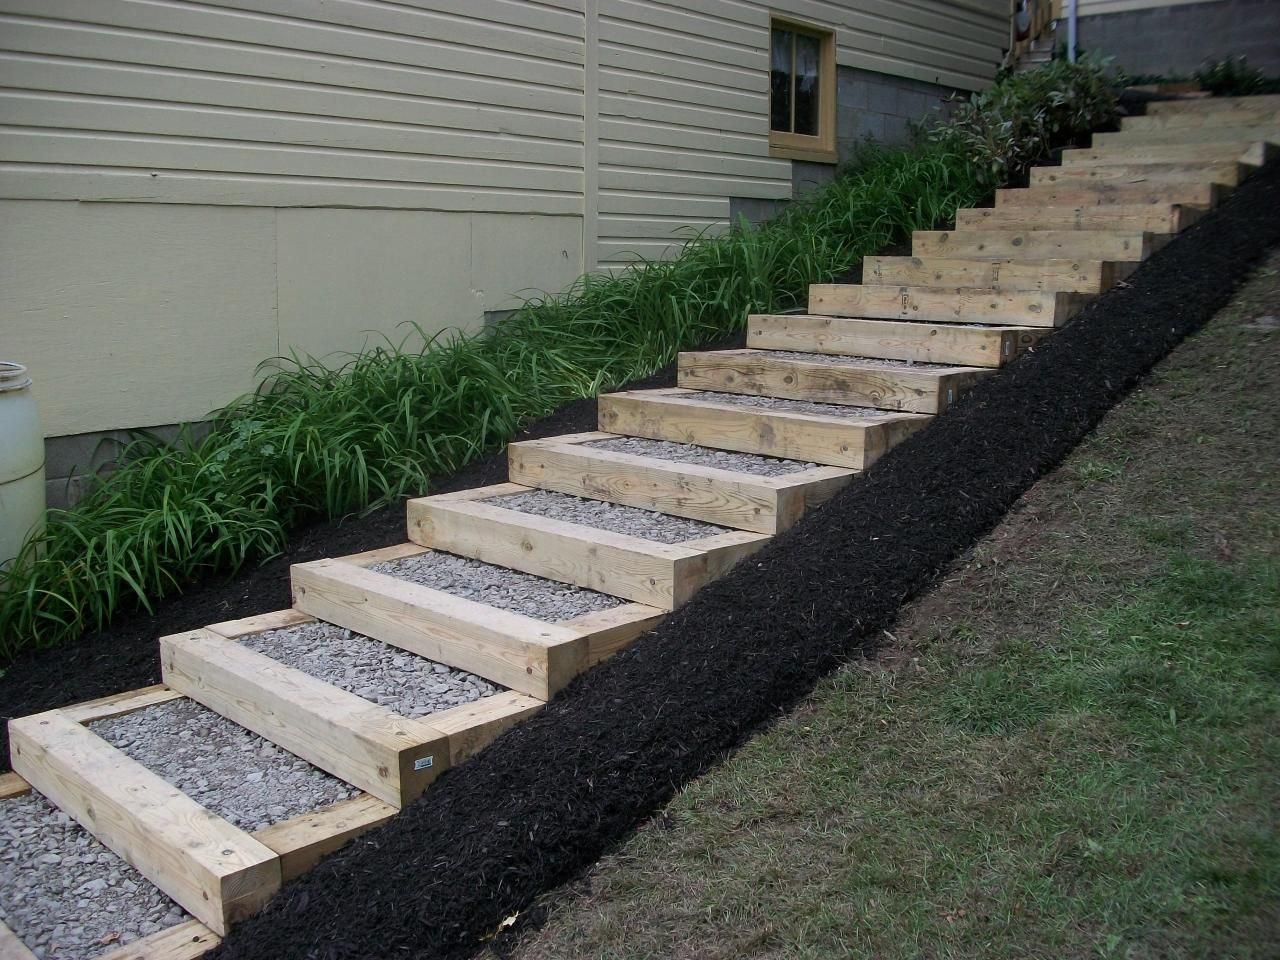 Landscape timbers home backyard pinterest petty for Pictures of garden steps designs